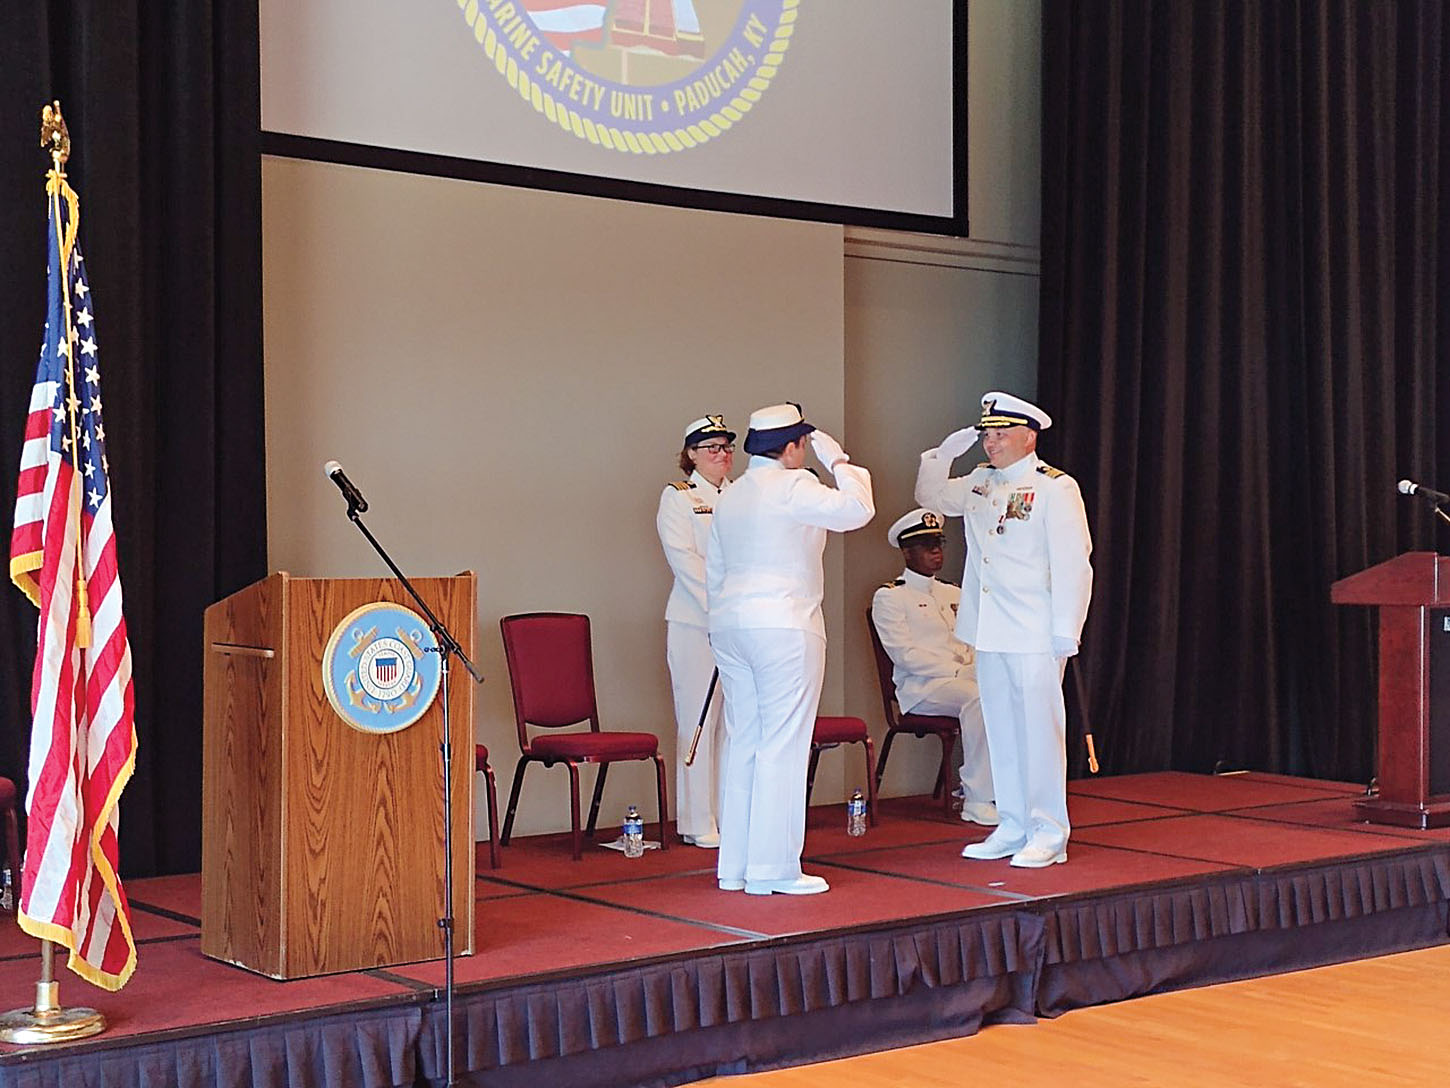 Caption for photo: Cmdr. Jennifer G. Andrew and Cmdr. Luis Carmona salute during a June 4 change of command ceremony. The ceremony featured remarks from both, along with awards and a few surprises. (Photo by Shelley Byrne)